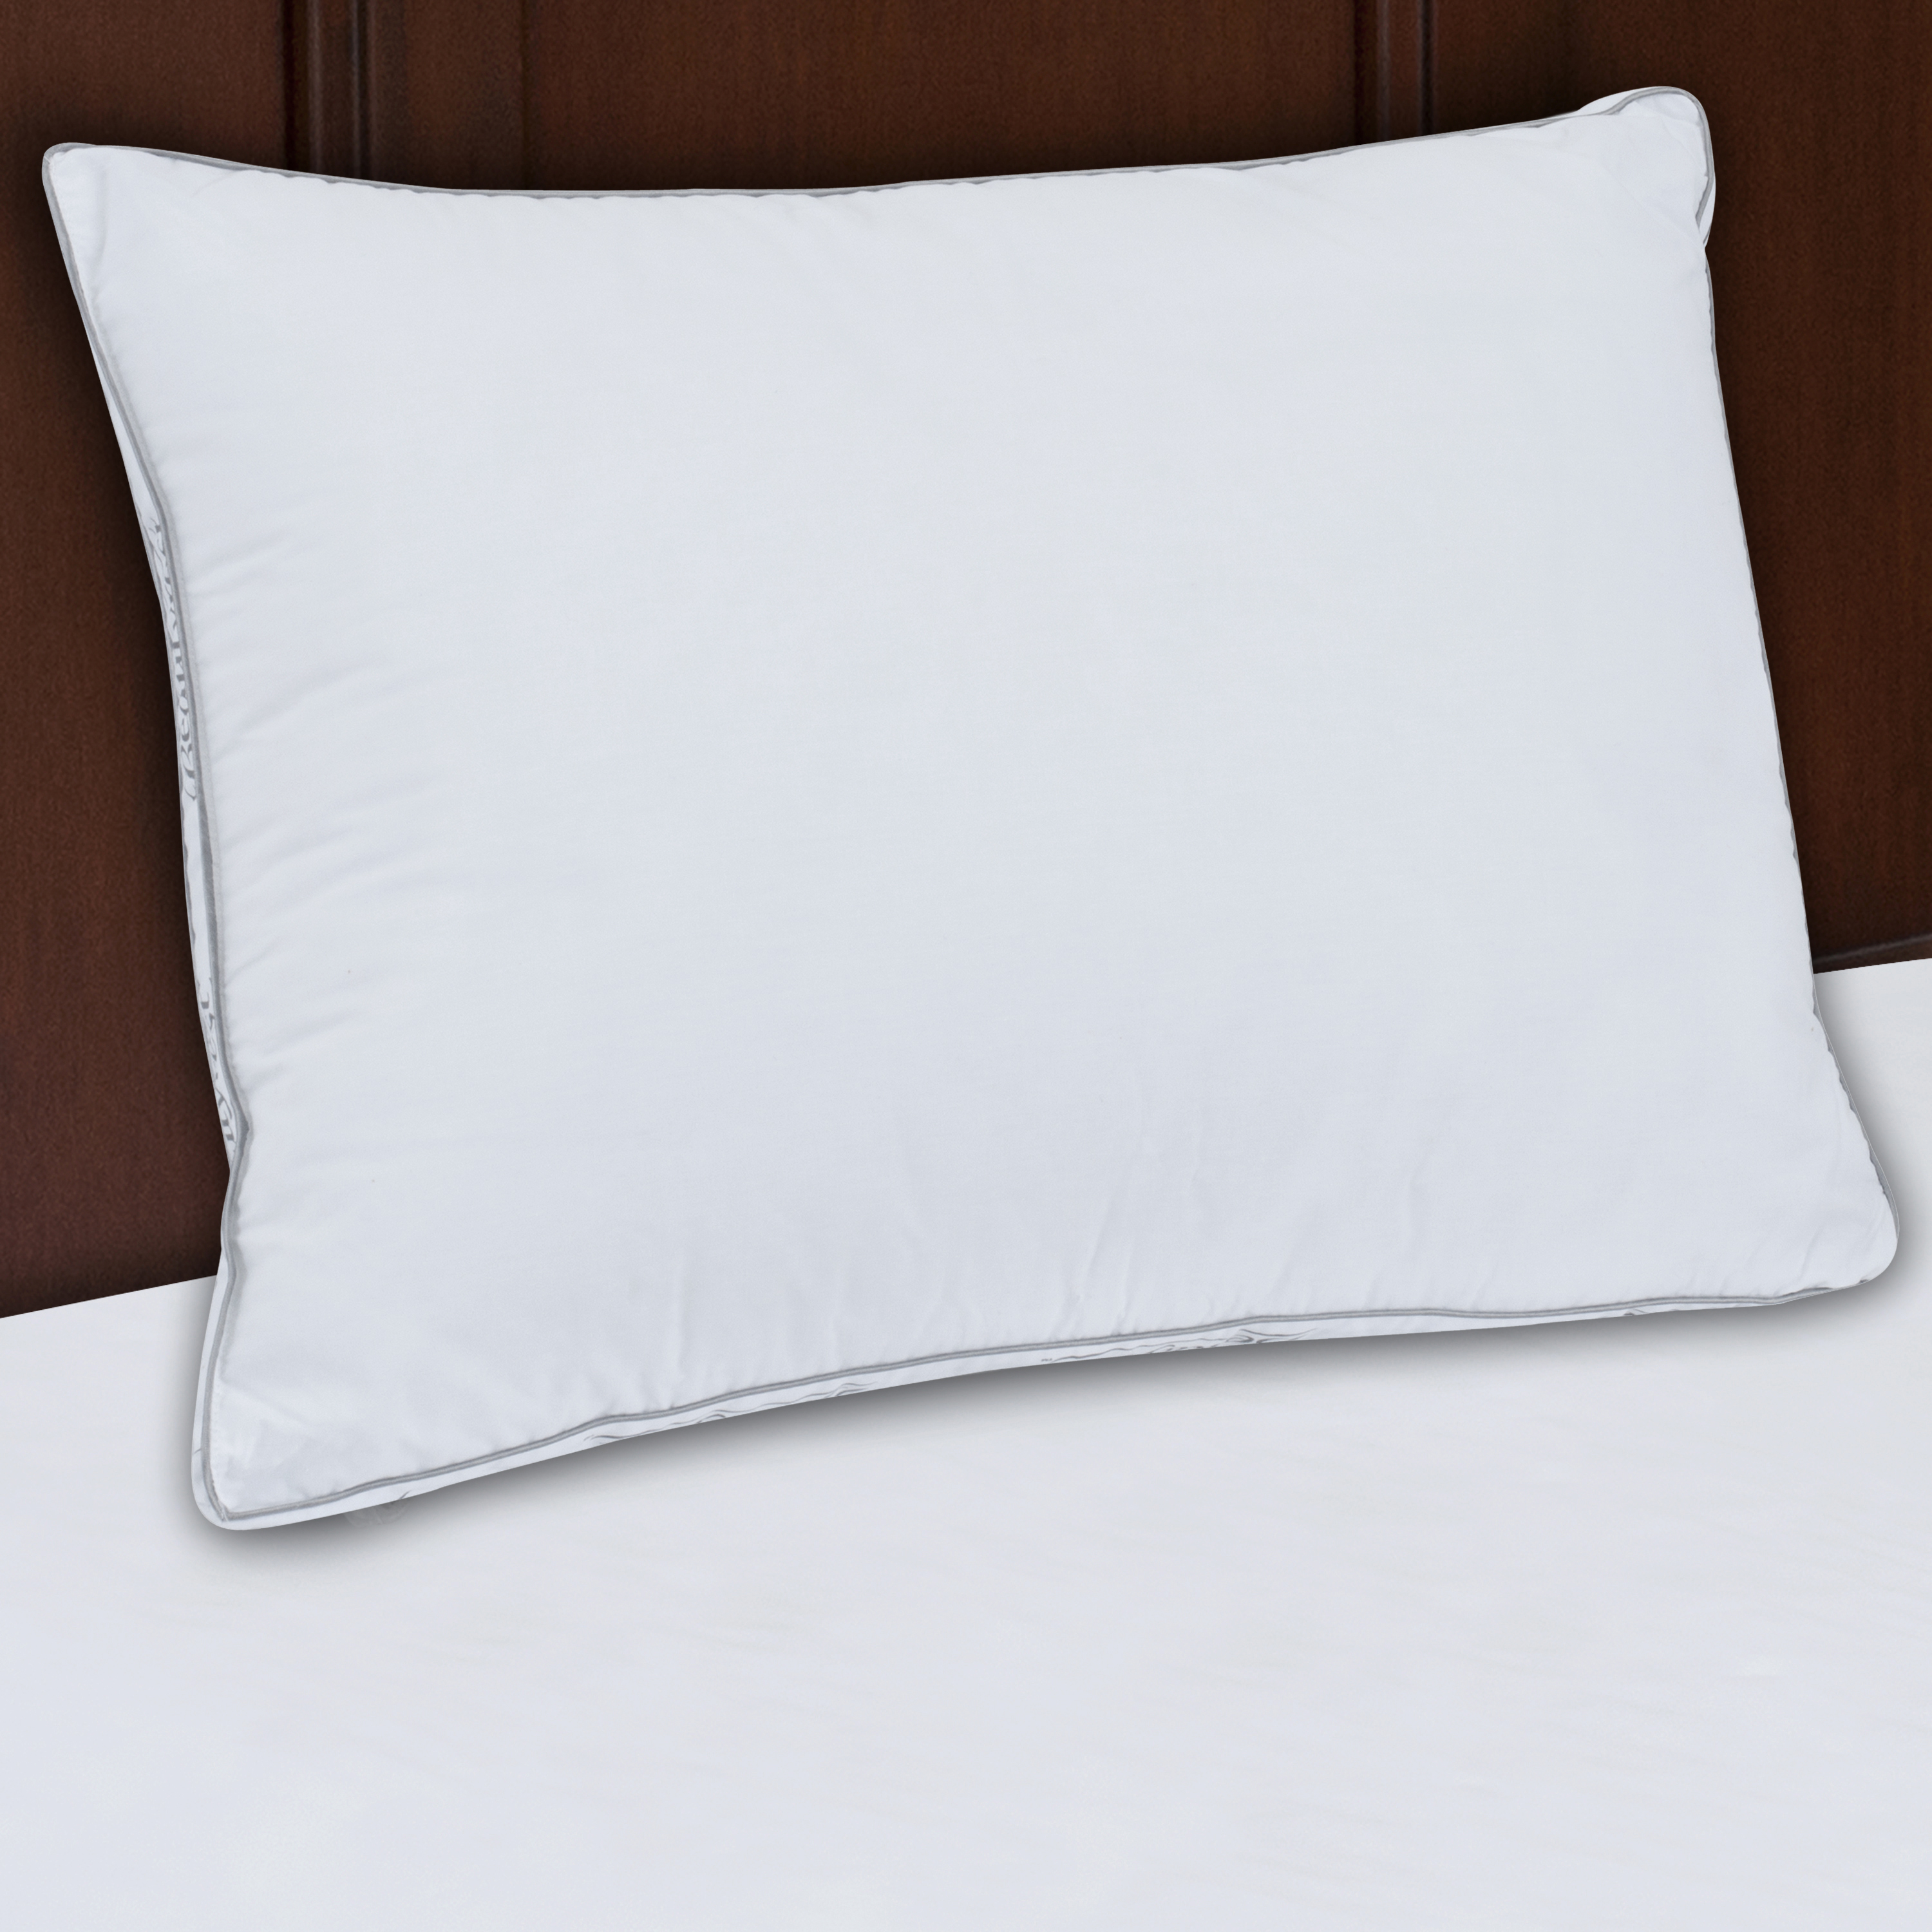 Beautyrest Pillows Spa Collection Image Placeholder Image